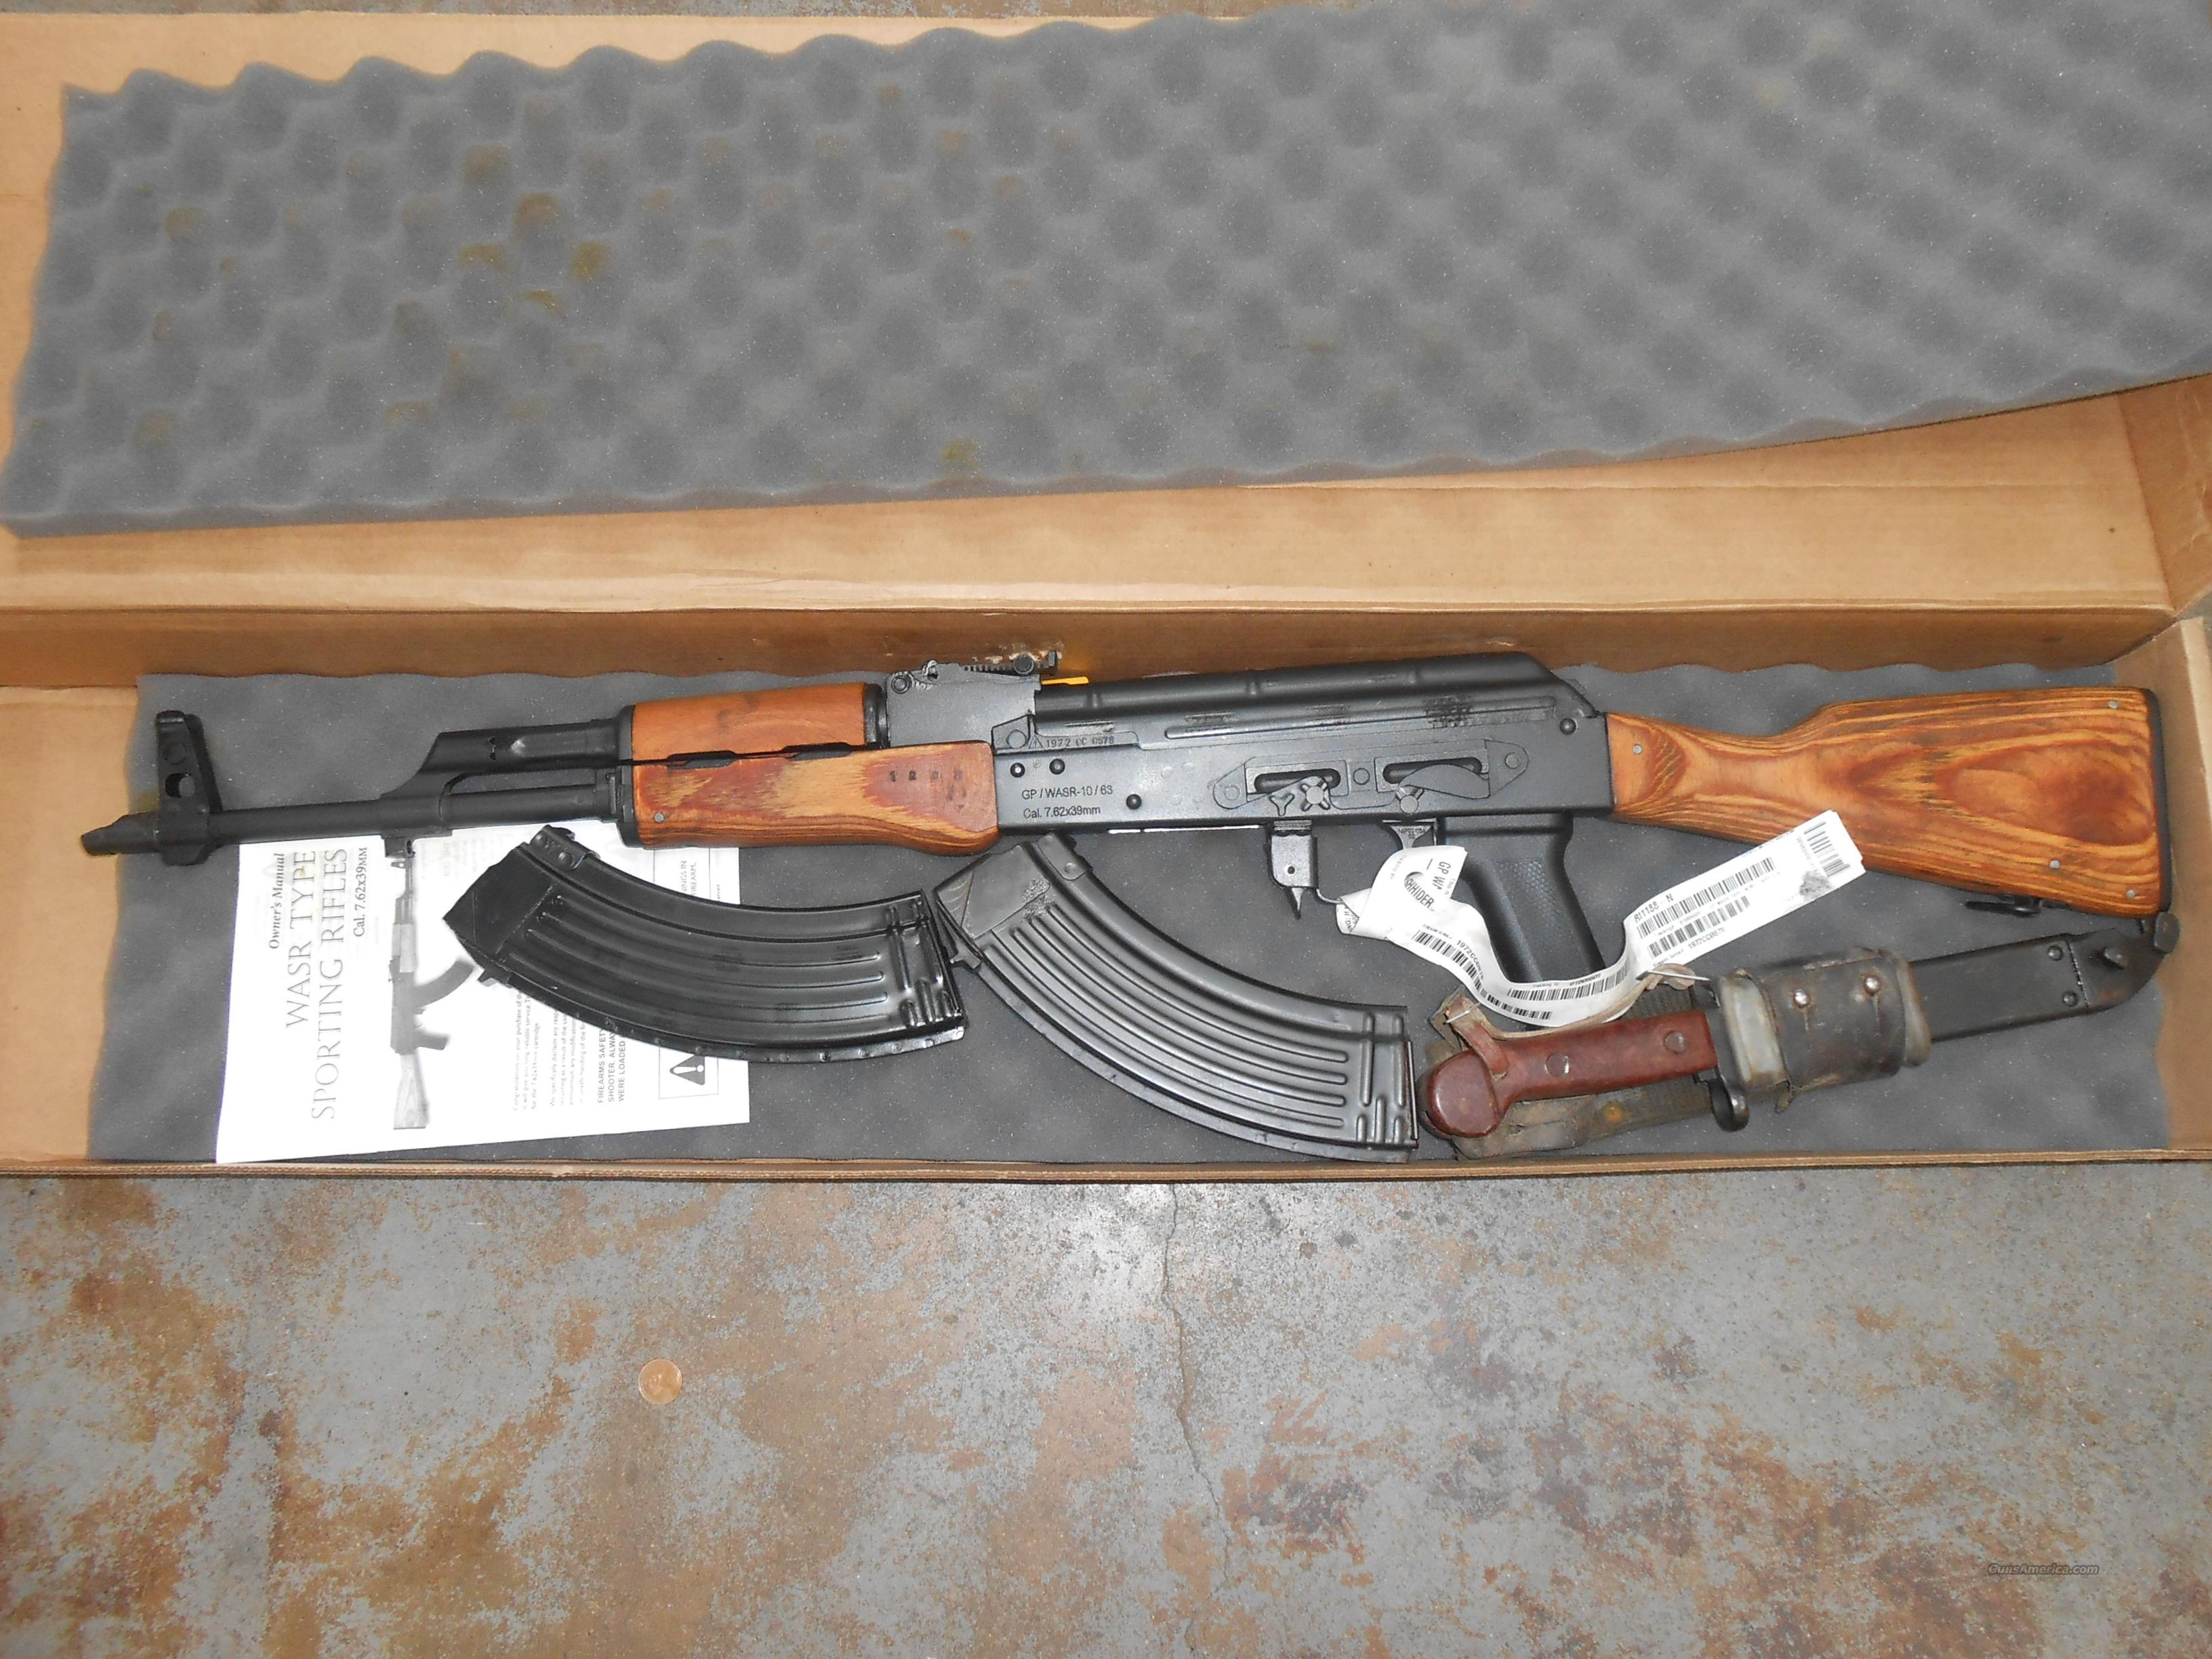 CENTURY AK-47 PREBAN 7.62X39  Guns > Rifles > Century International Arms - Rifles > Rifles